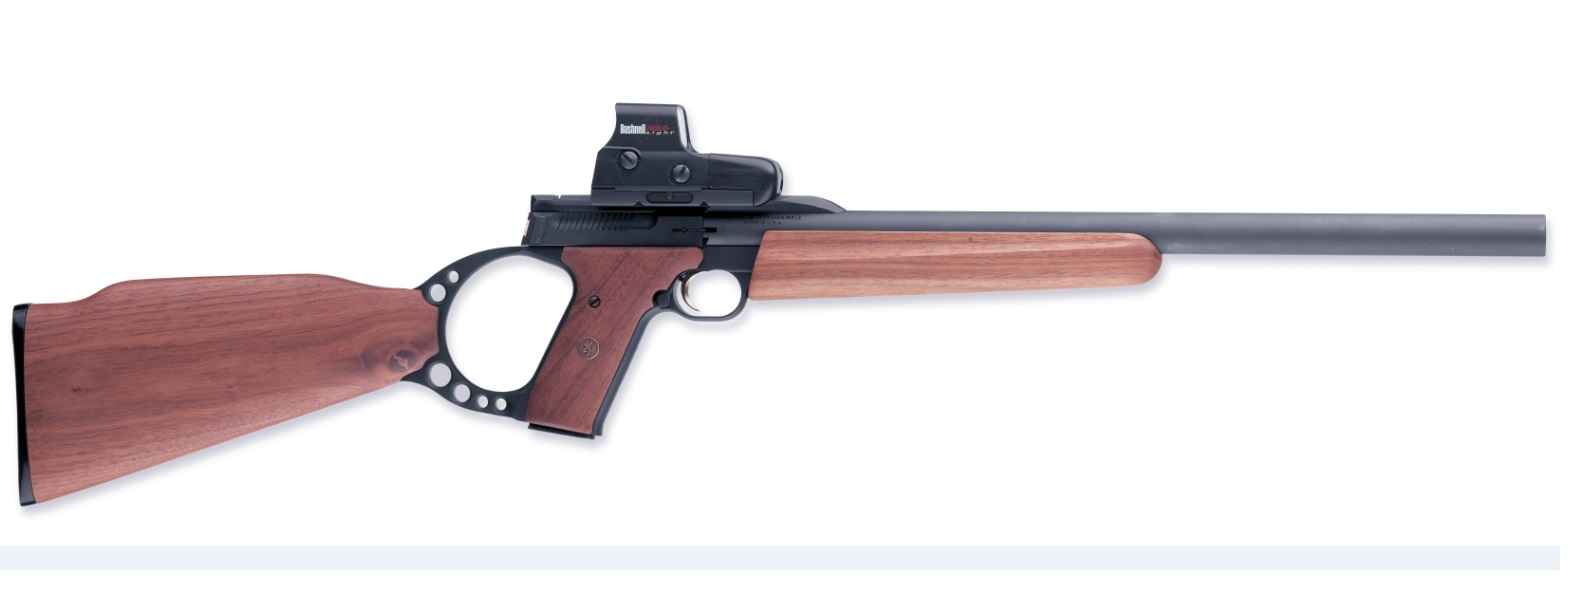 Browning Buck Mark Target Rifle 22 LR